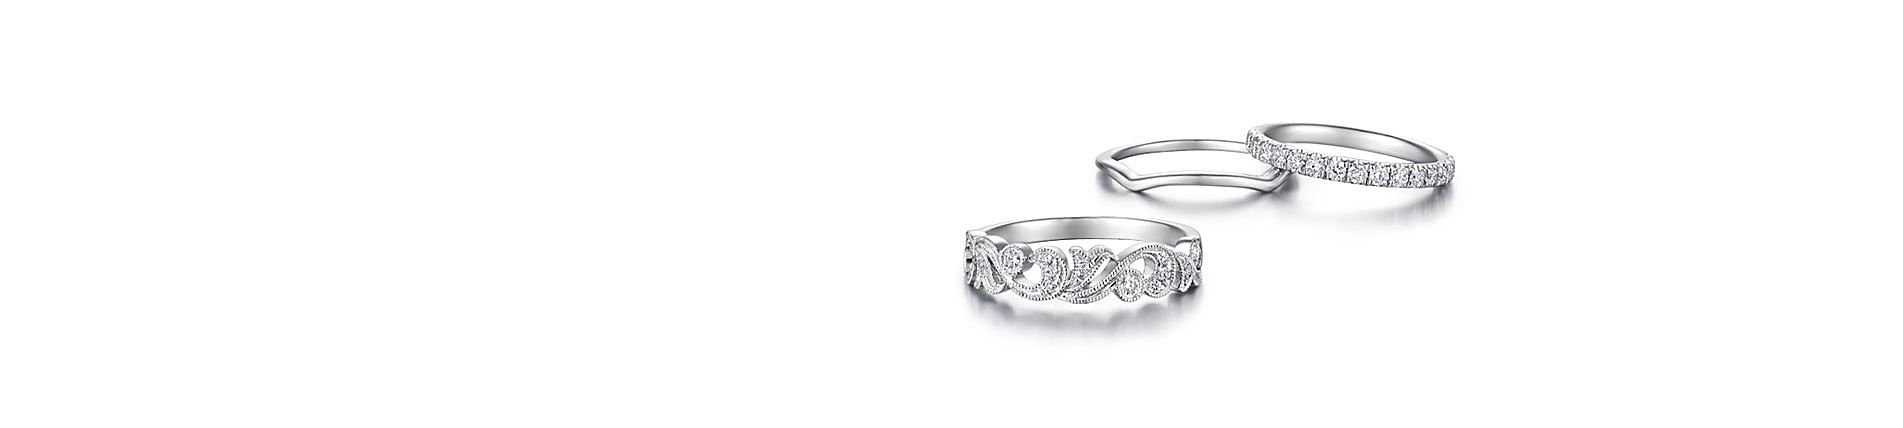 year rings jewellery is can anniversary that gift diamond you the wedding lovely a of best bands